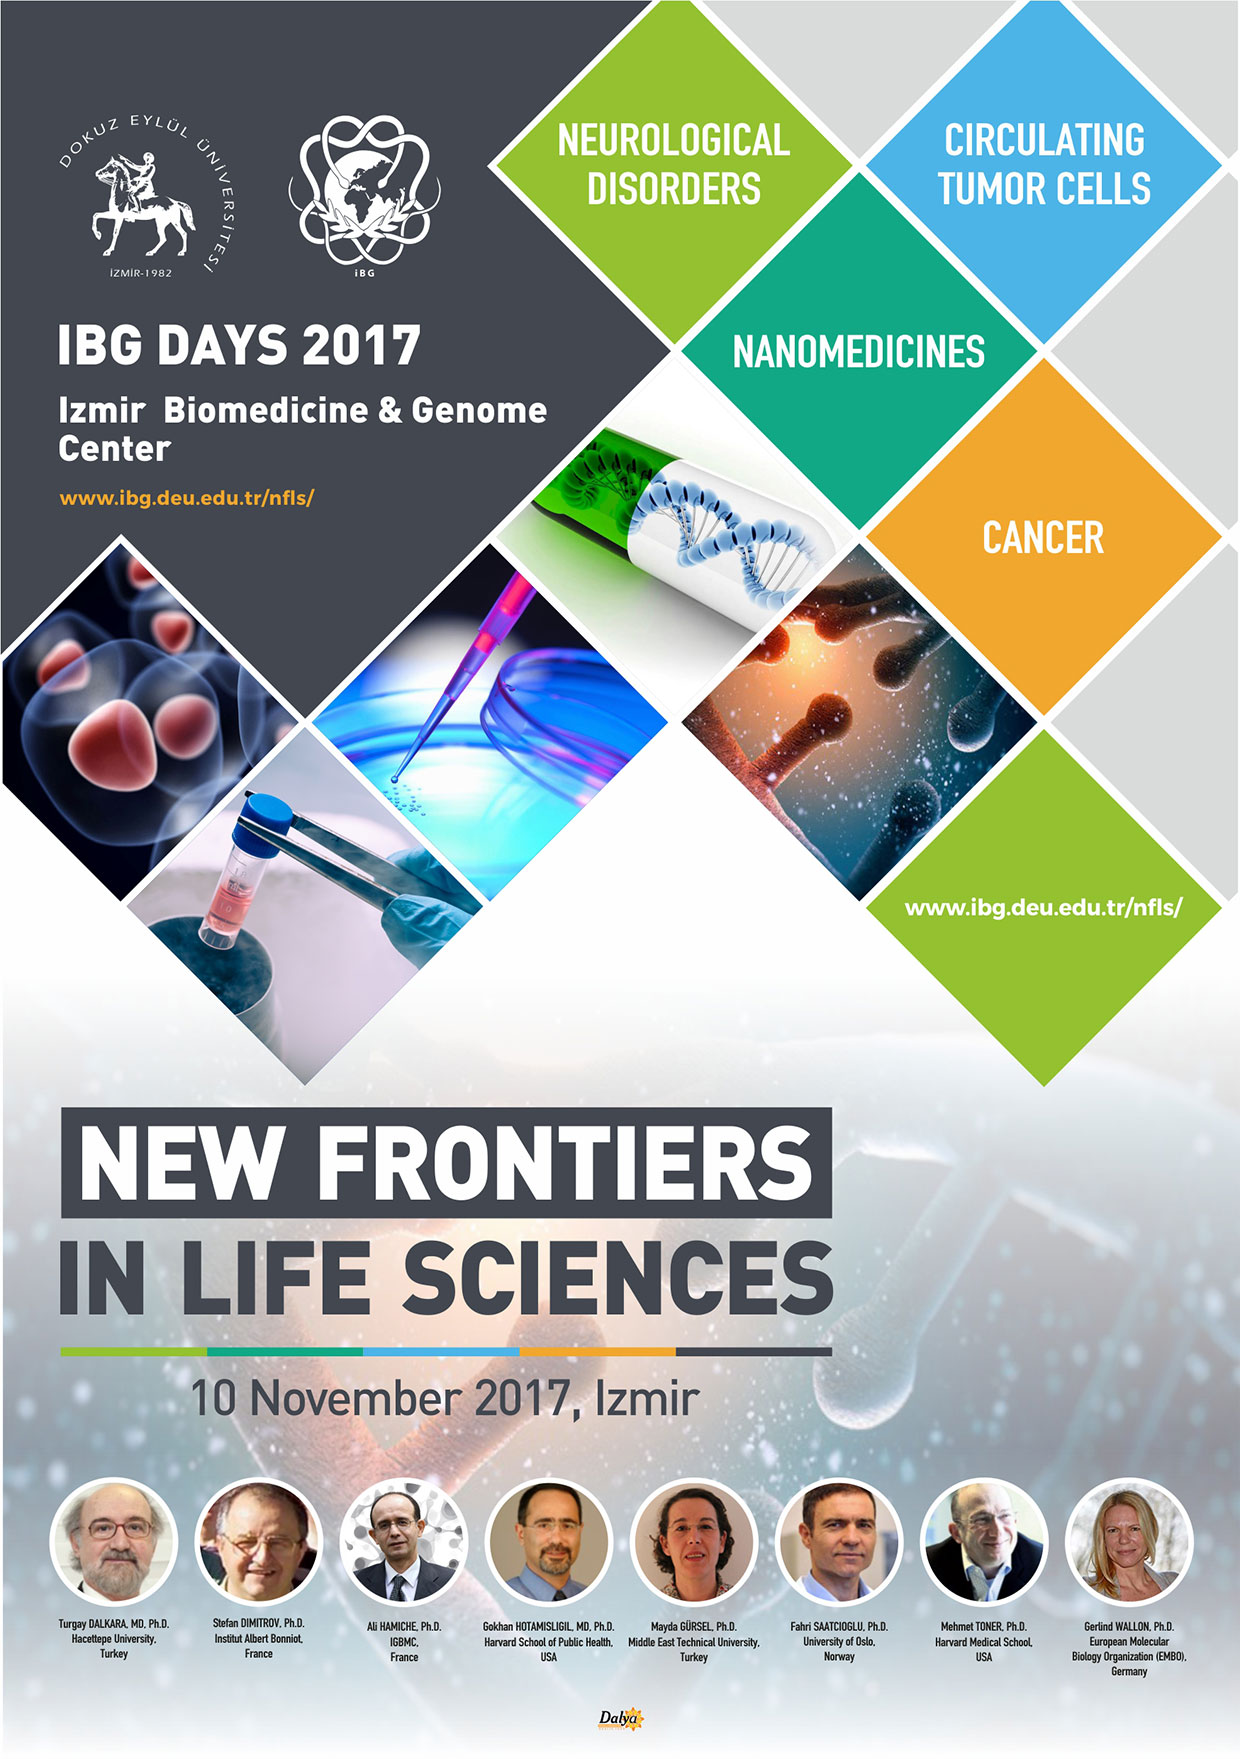 New Frontiers in Life Sciences